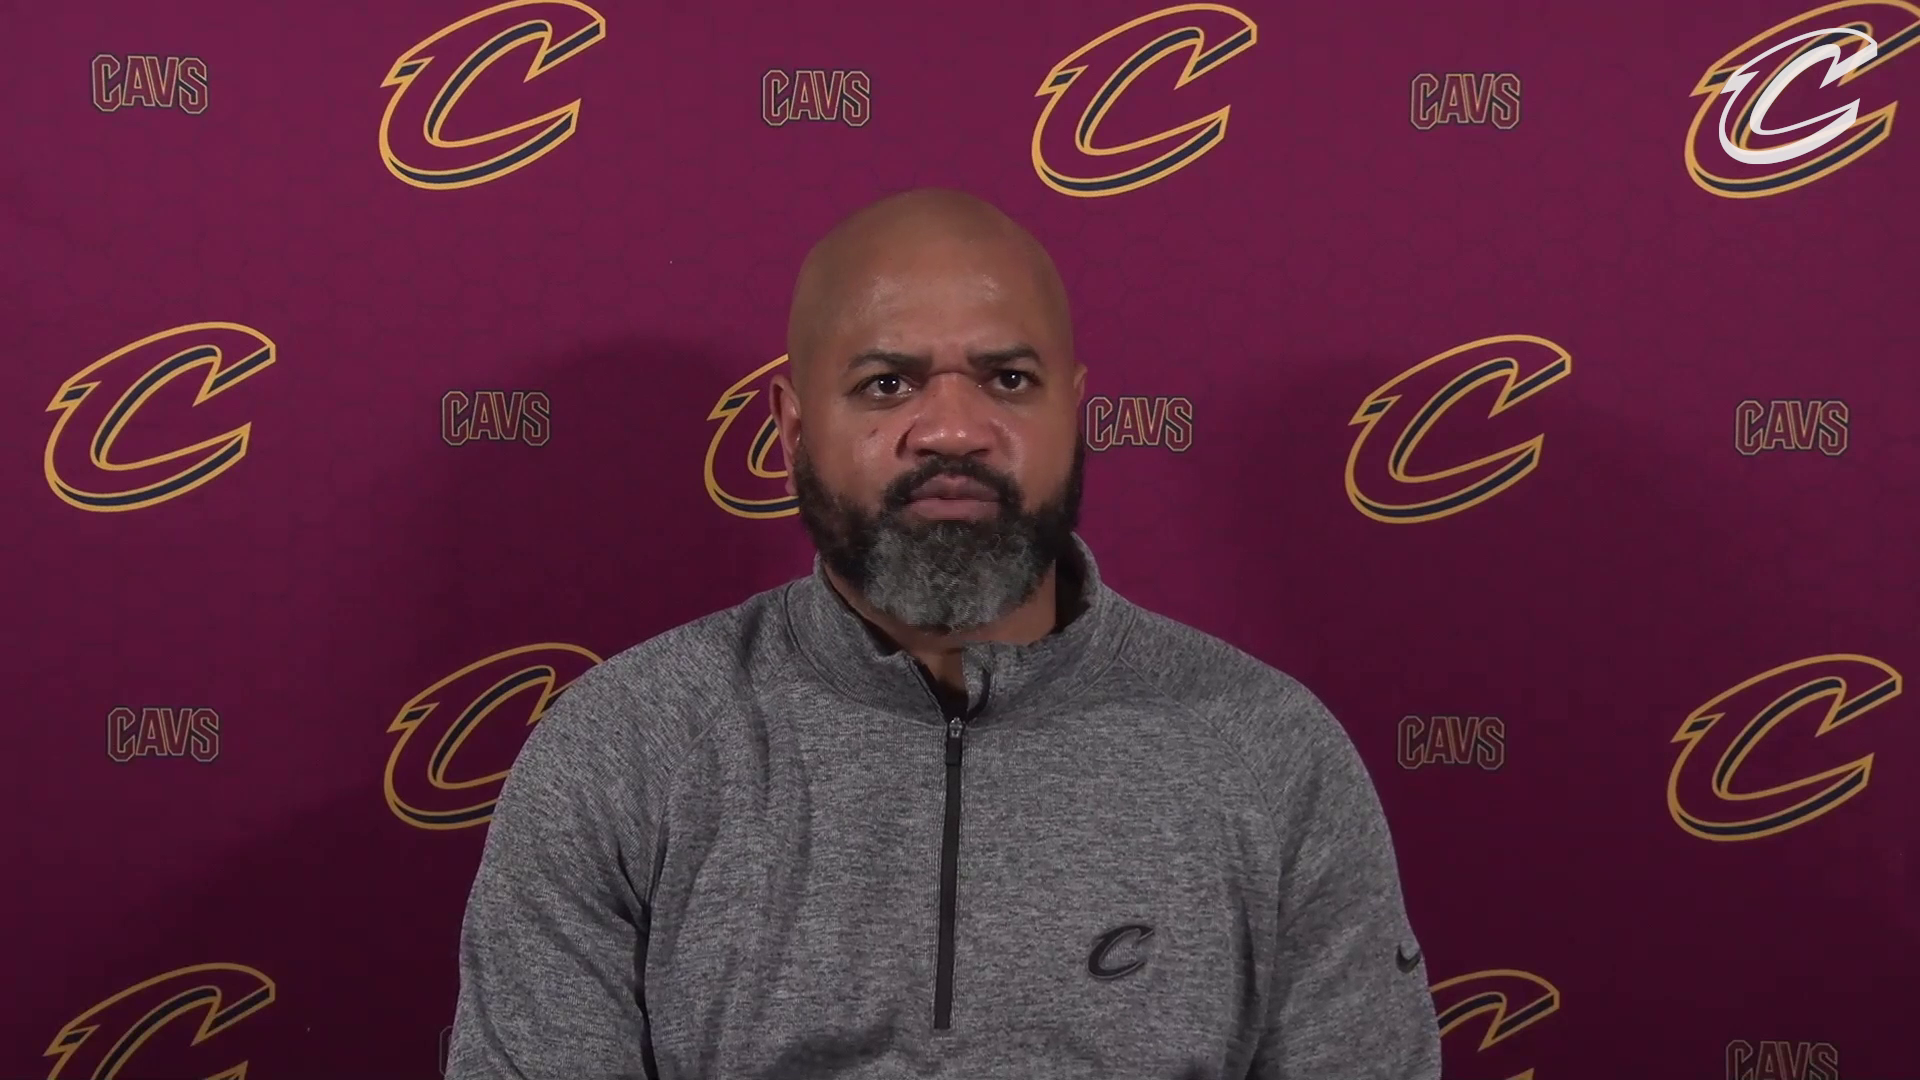 Cavs at Thunder Postgame: Coach Bickerstaff